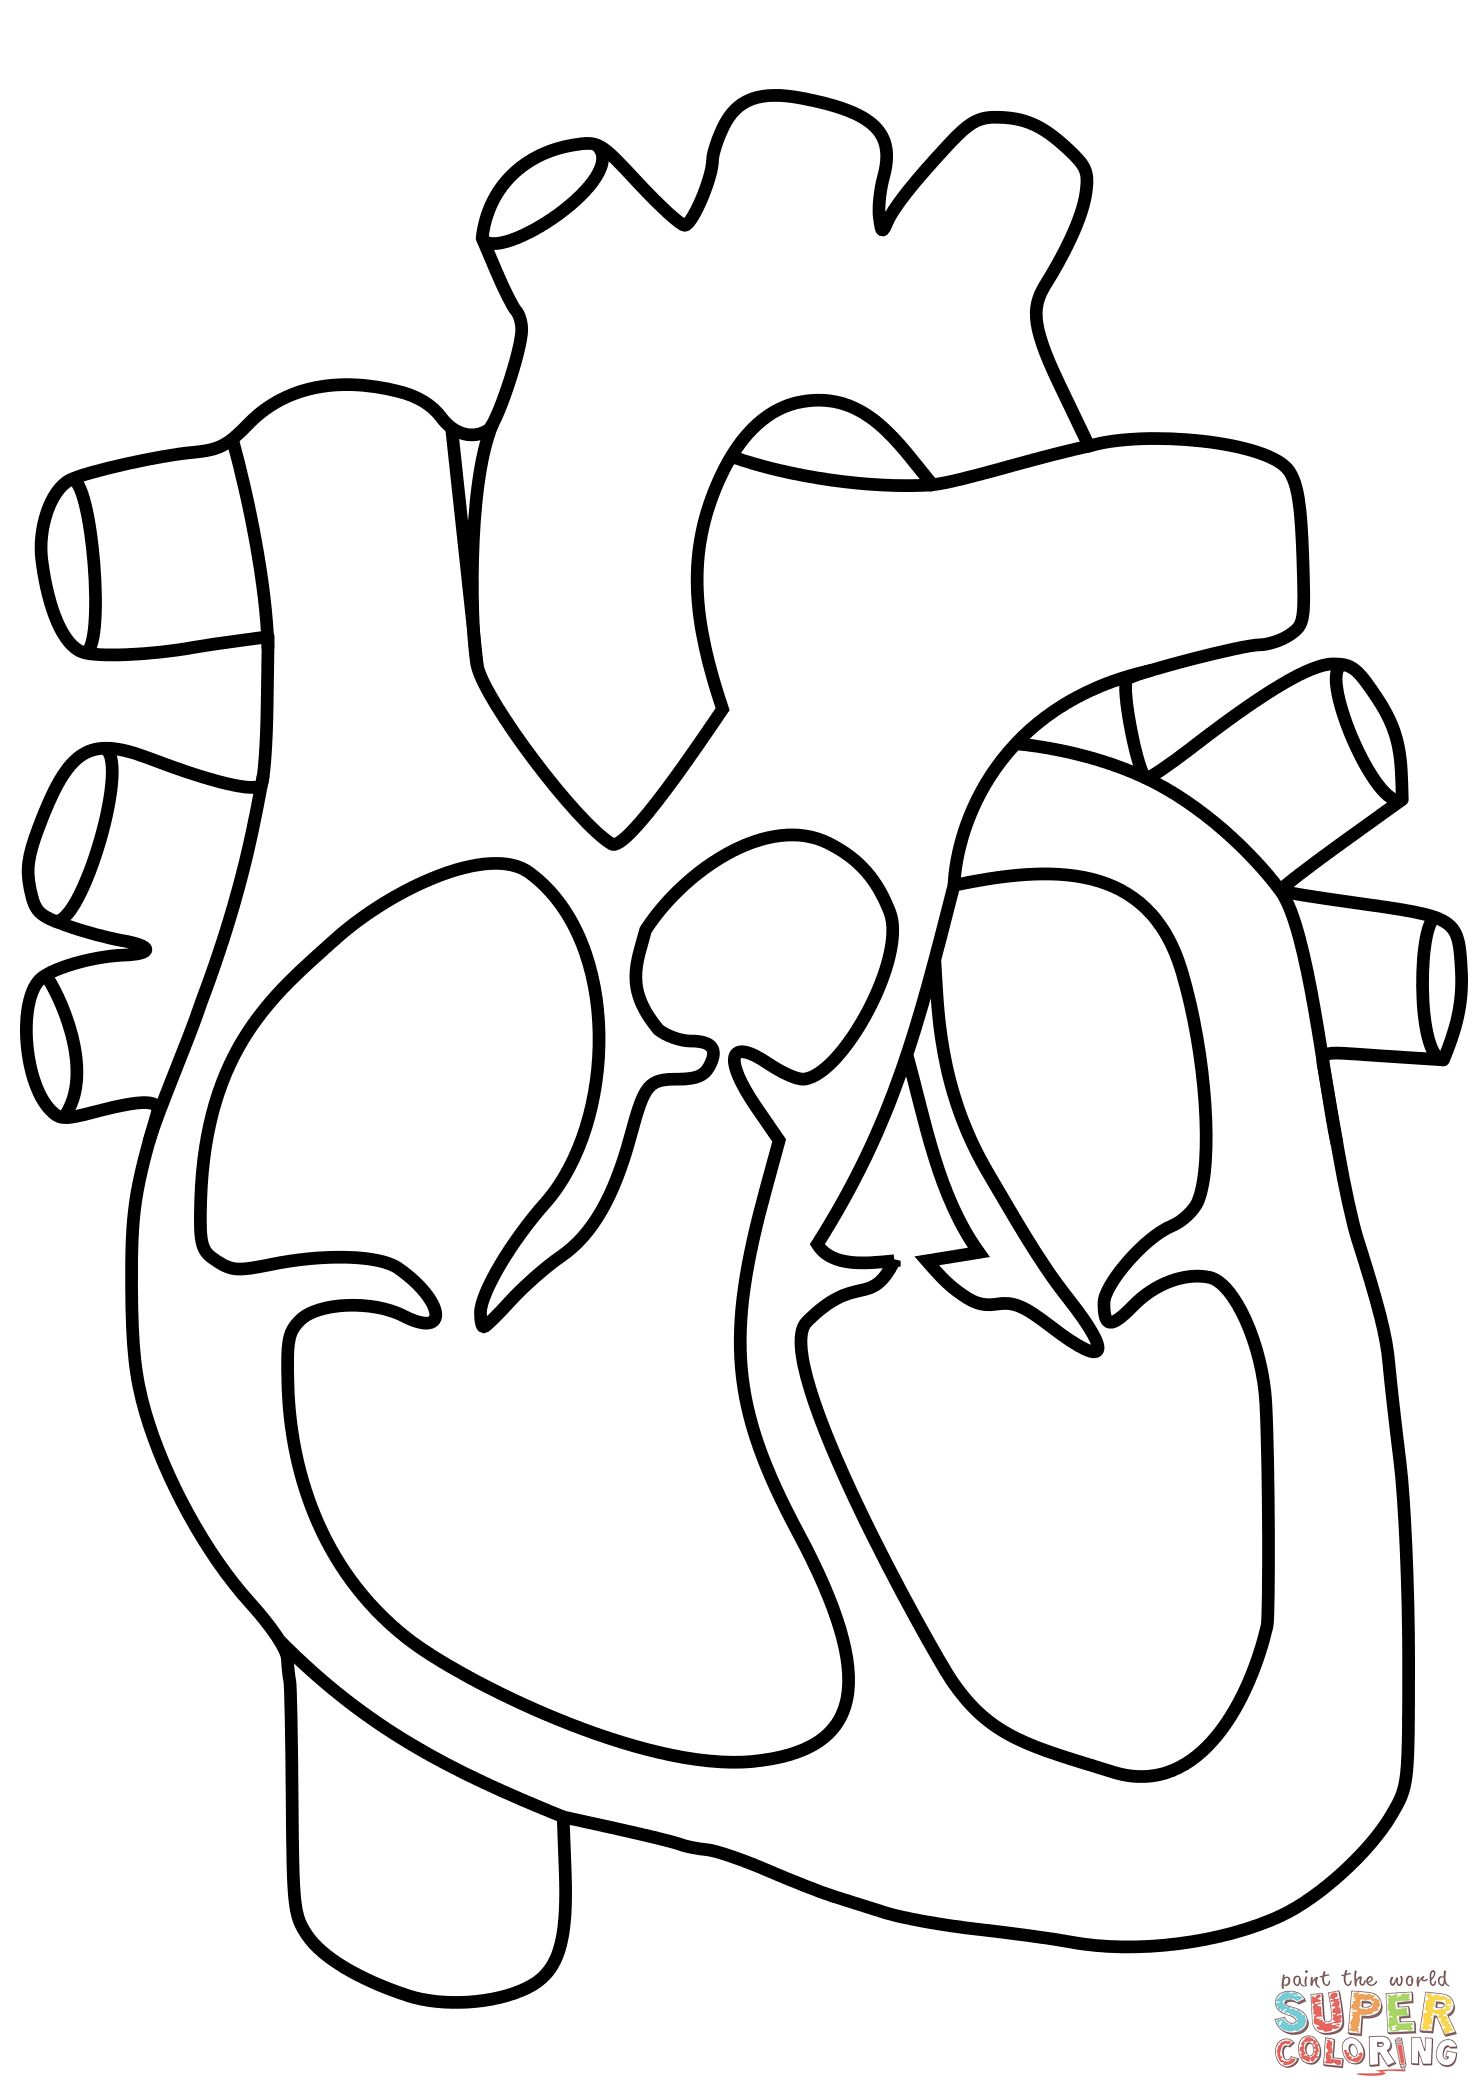 Human Heart Coloring Pages Human Heart Coloring Page Human